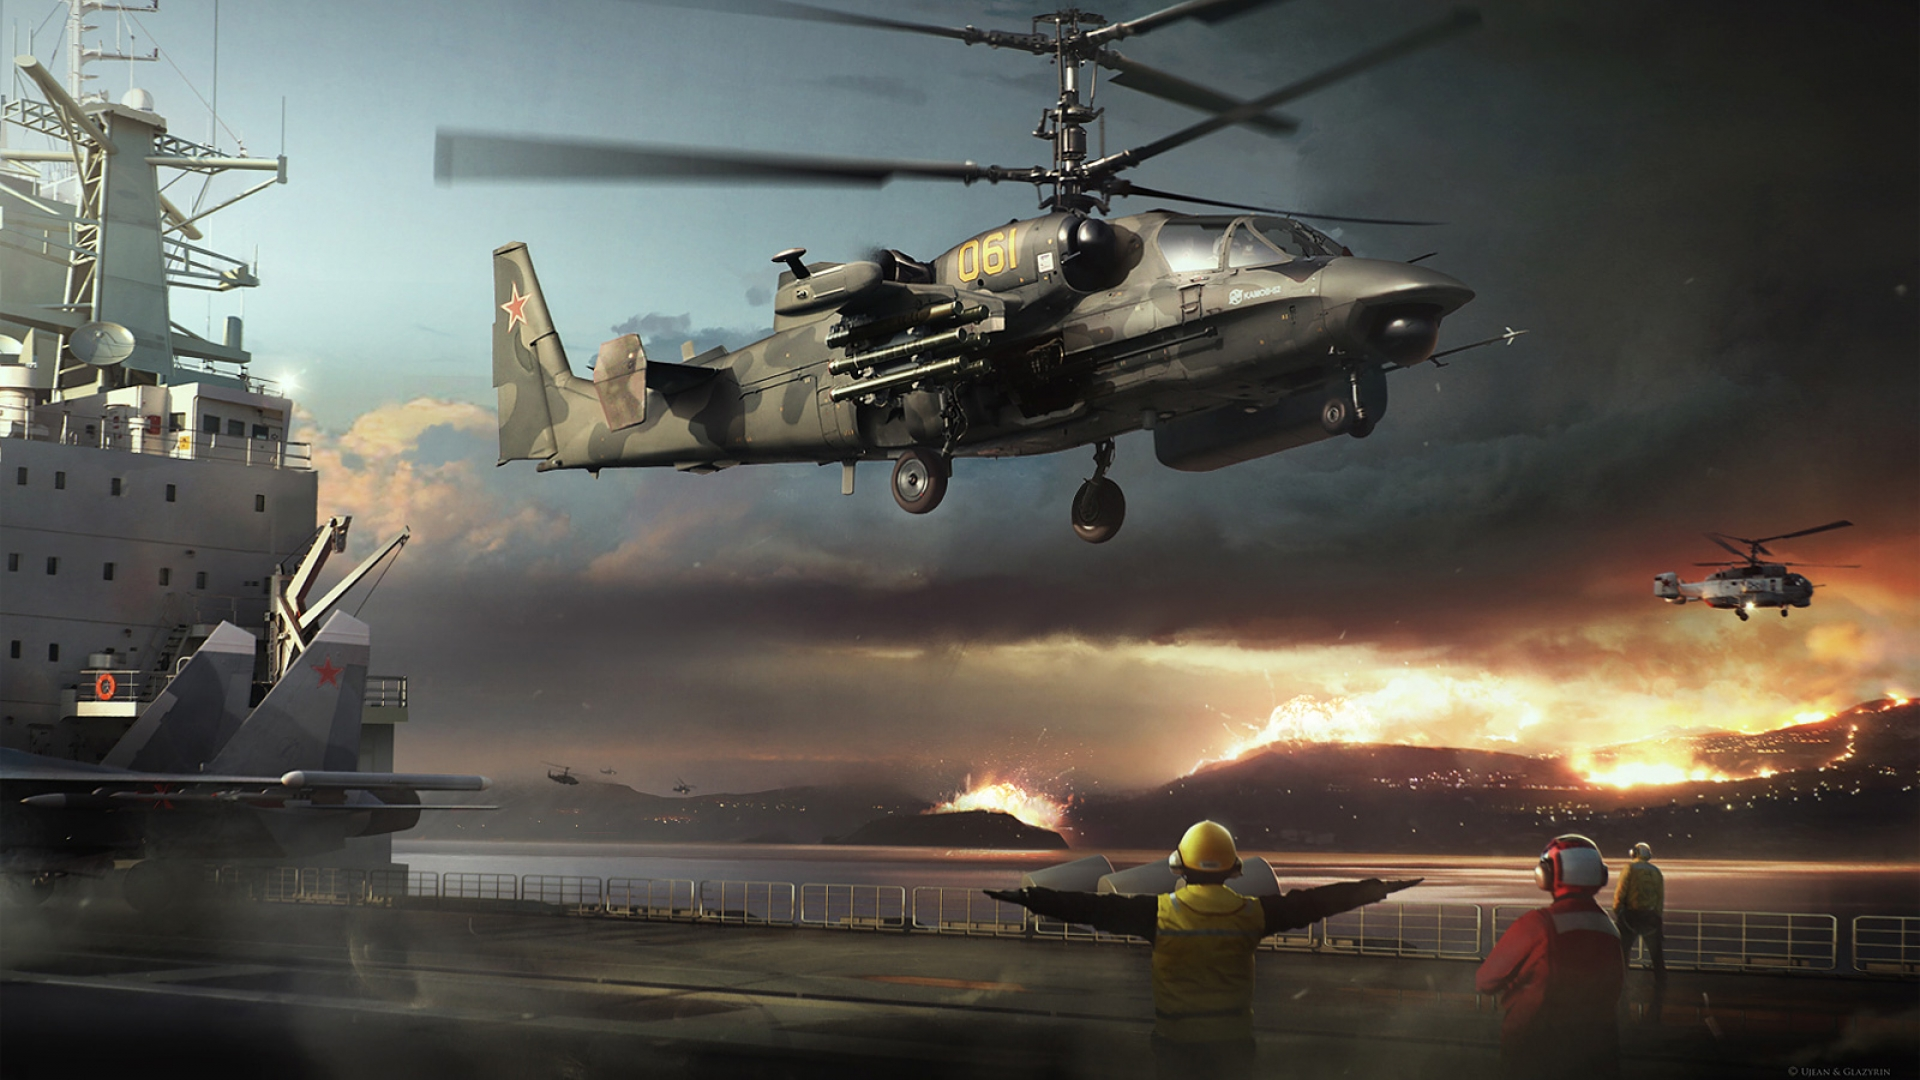 Collection of Helicopter Widescreen Wallpapers: 39194754, 1920x1080